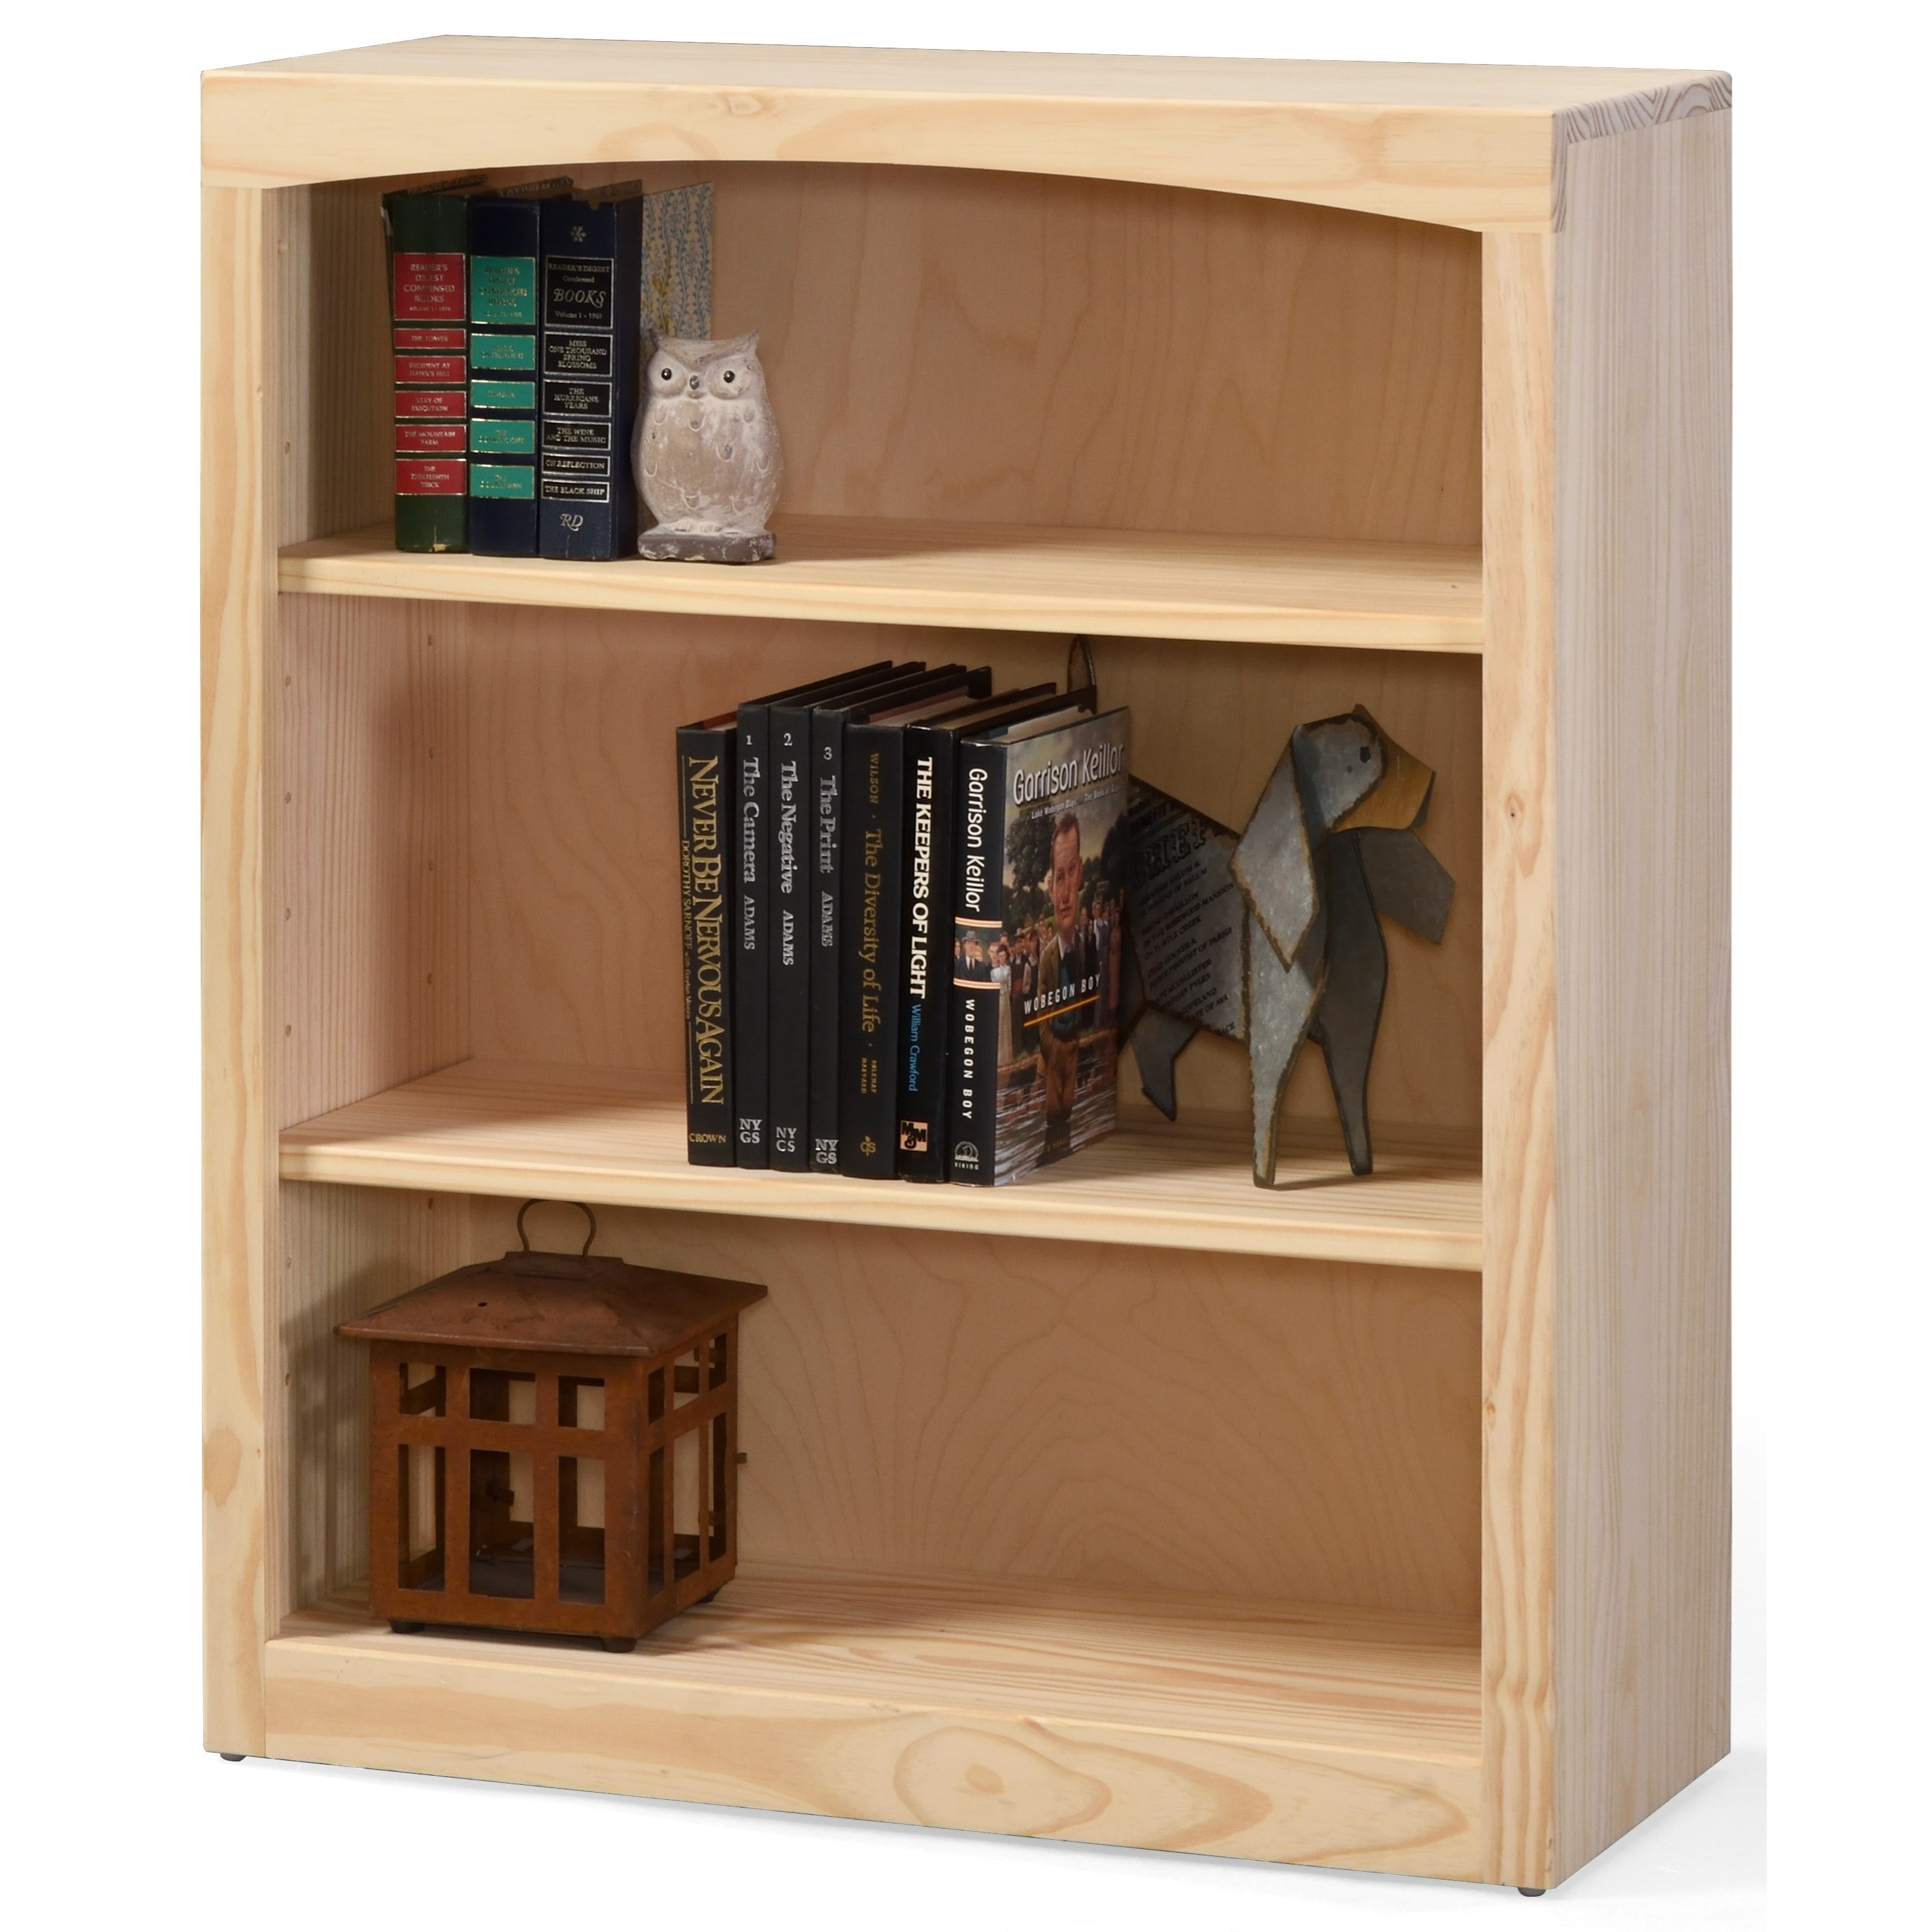 "Pine Bookcases 36"" Tall Pine Bookcase by Archbold Furniture at Furniture and ApplianceMart"